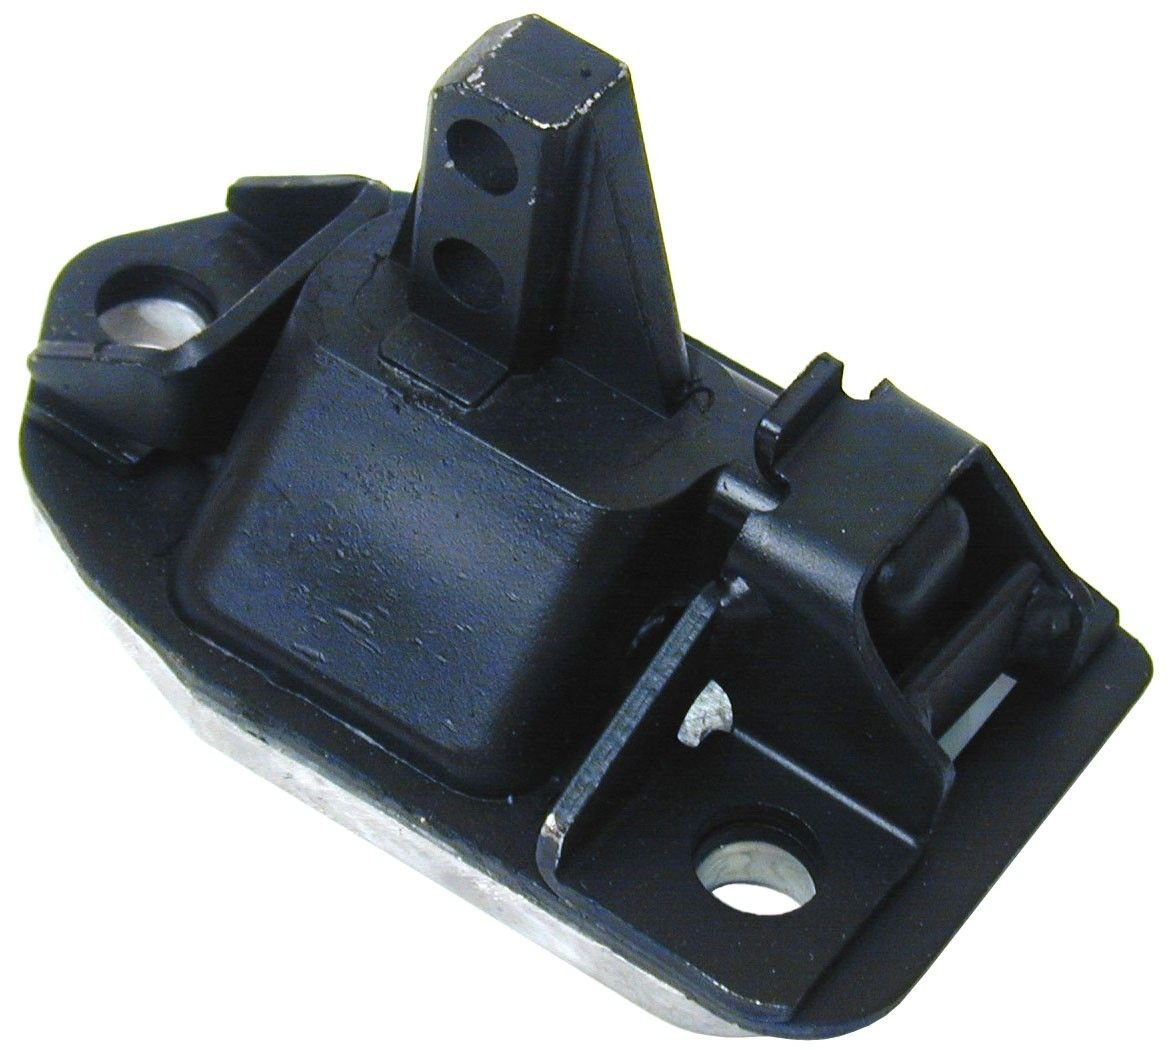 Volvo 850 Engine Mount Replacement Apa Uro Parts Anchor Beck 1994 Schematics 1997 Right 8631699